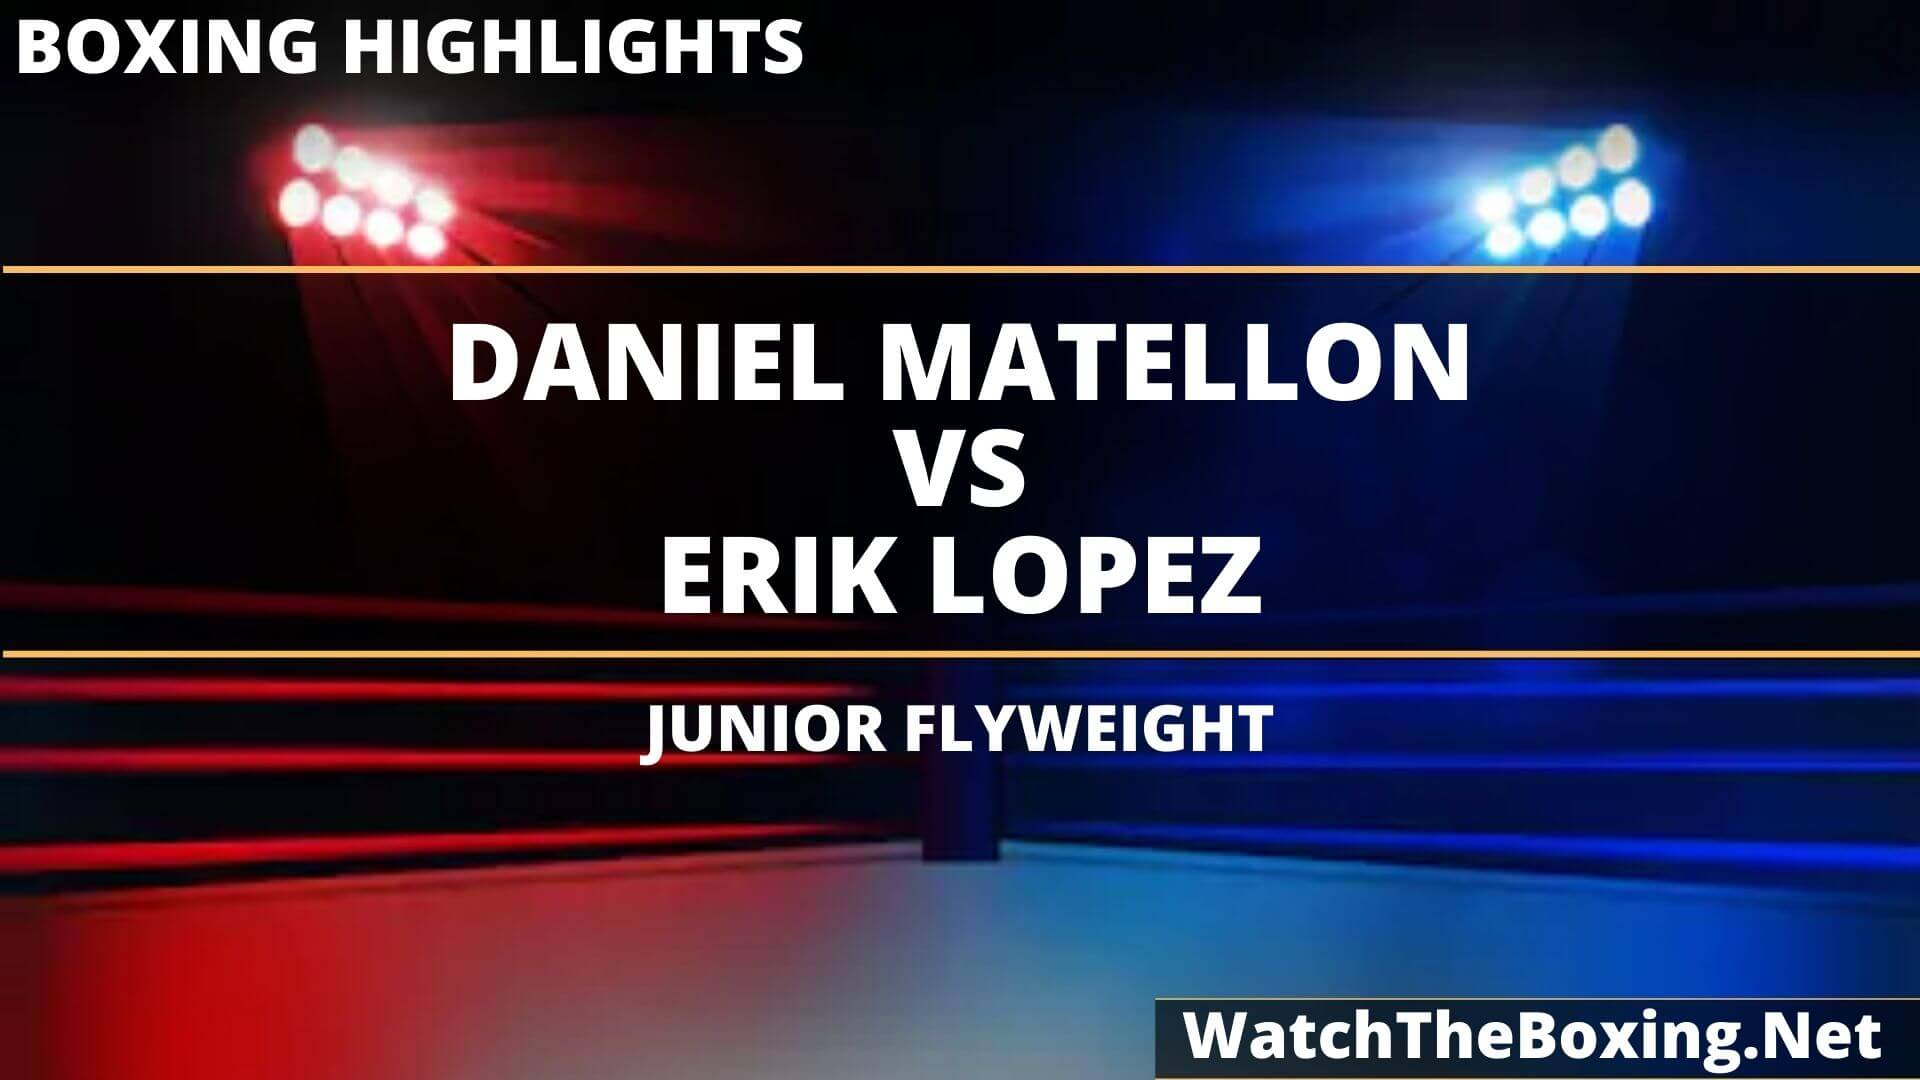 Daniel Matellon Vs Erik Lopez Highlights 2020